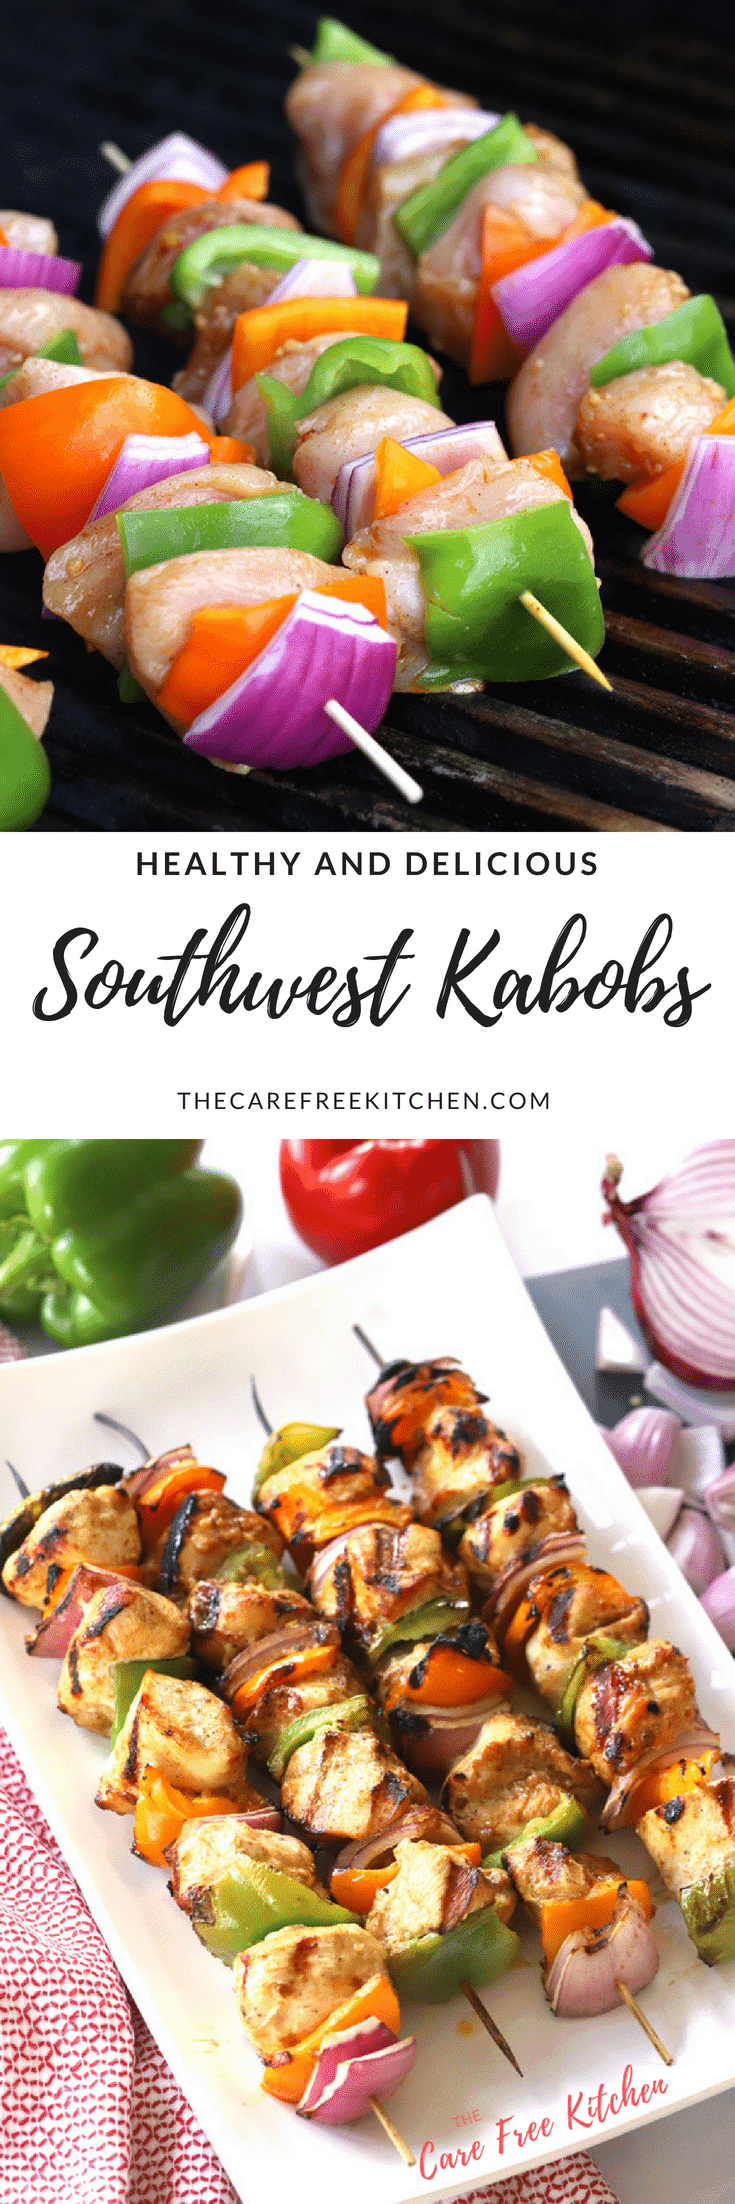 Southwest Chicken Shish Kabob Marinade